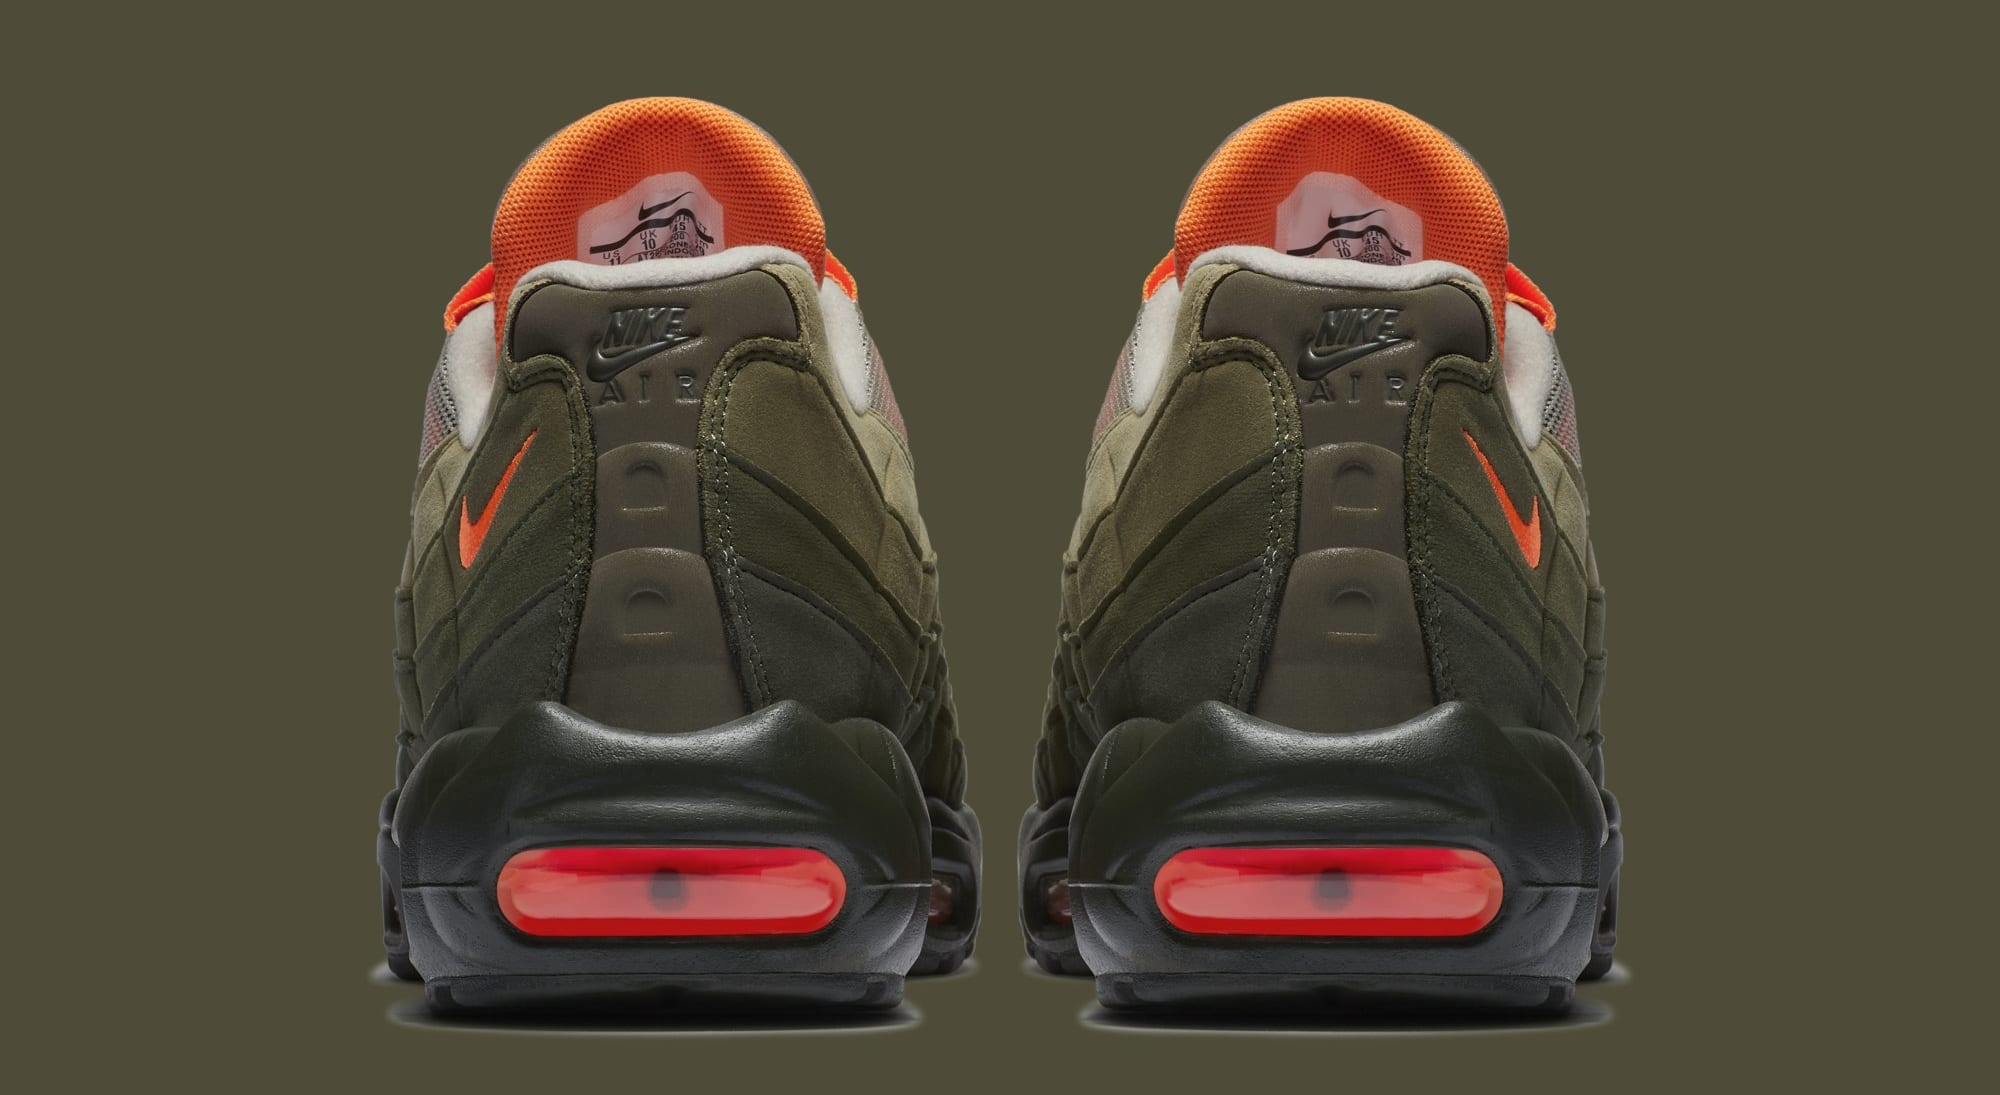 Nike Air Max 95 OG 'String/Total Orange/Neutral Olive' AT2865-200 (Heel)